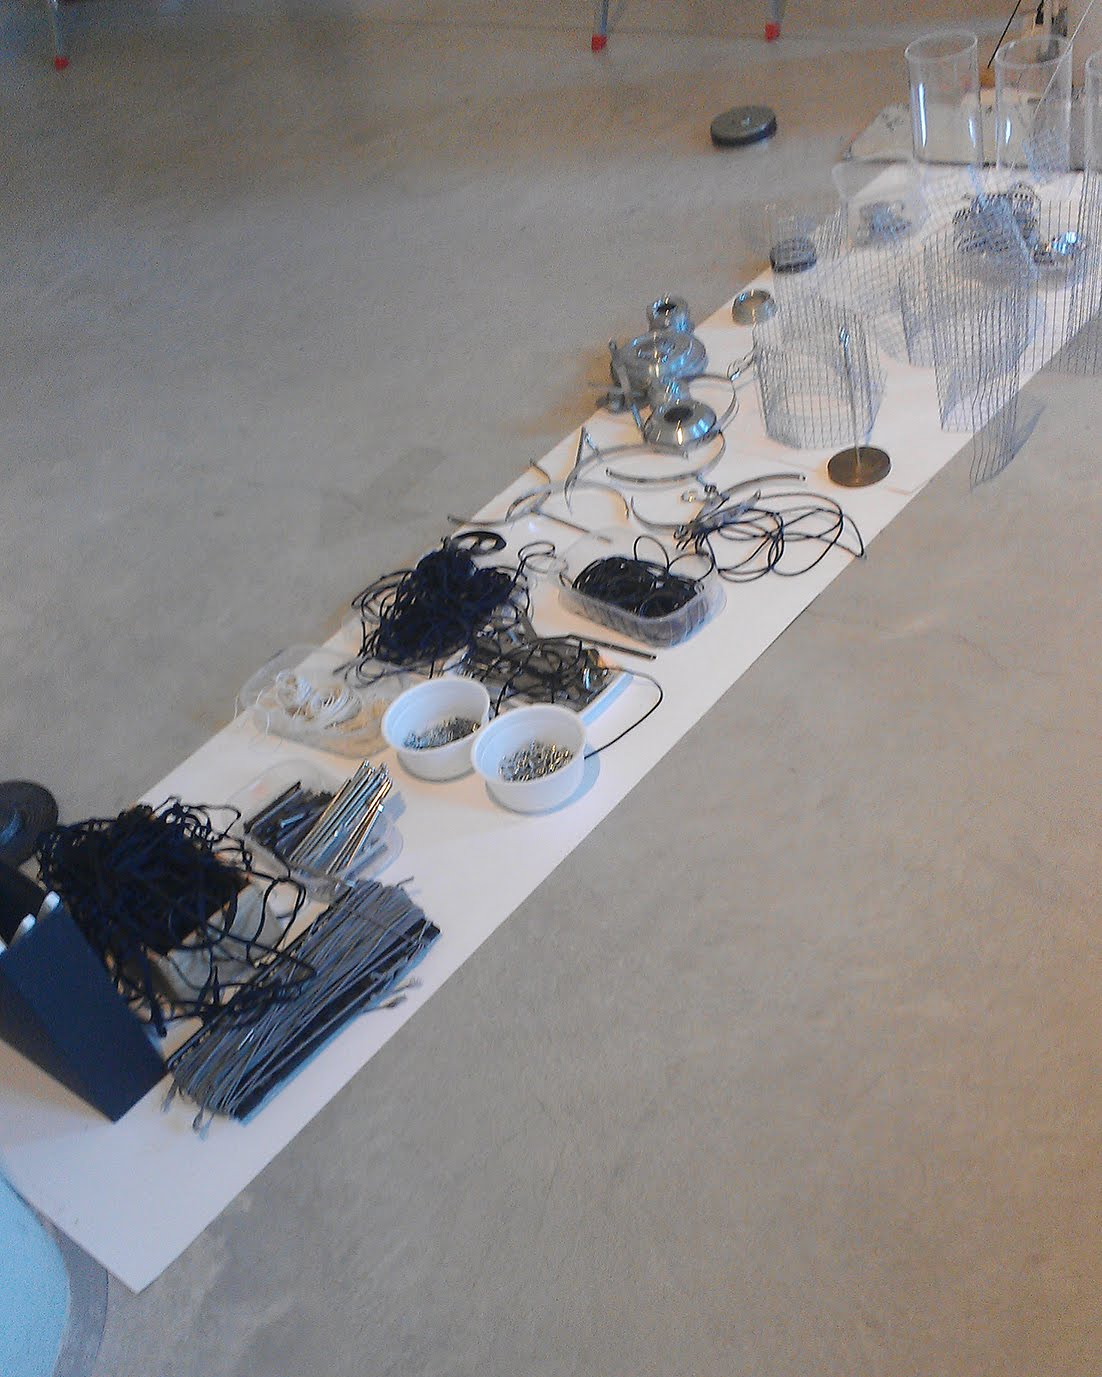 Materials for 'Aeroplastico' in Loris Malaguzzi International Centre